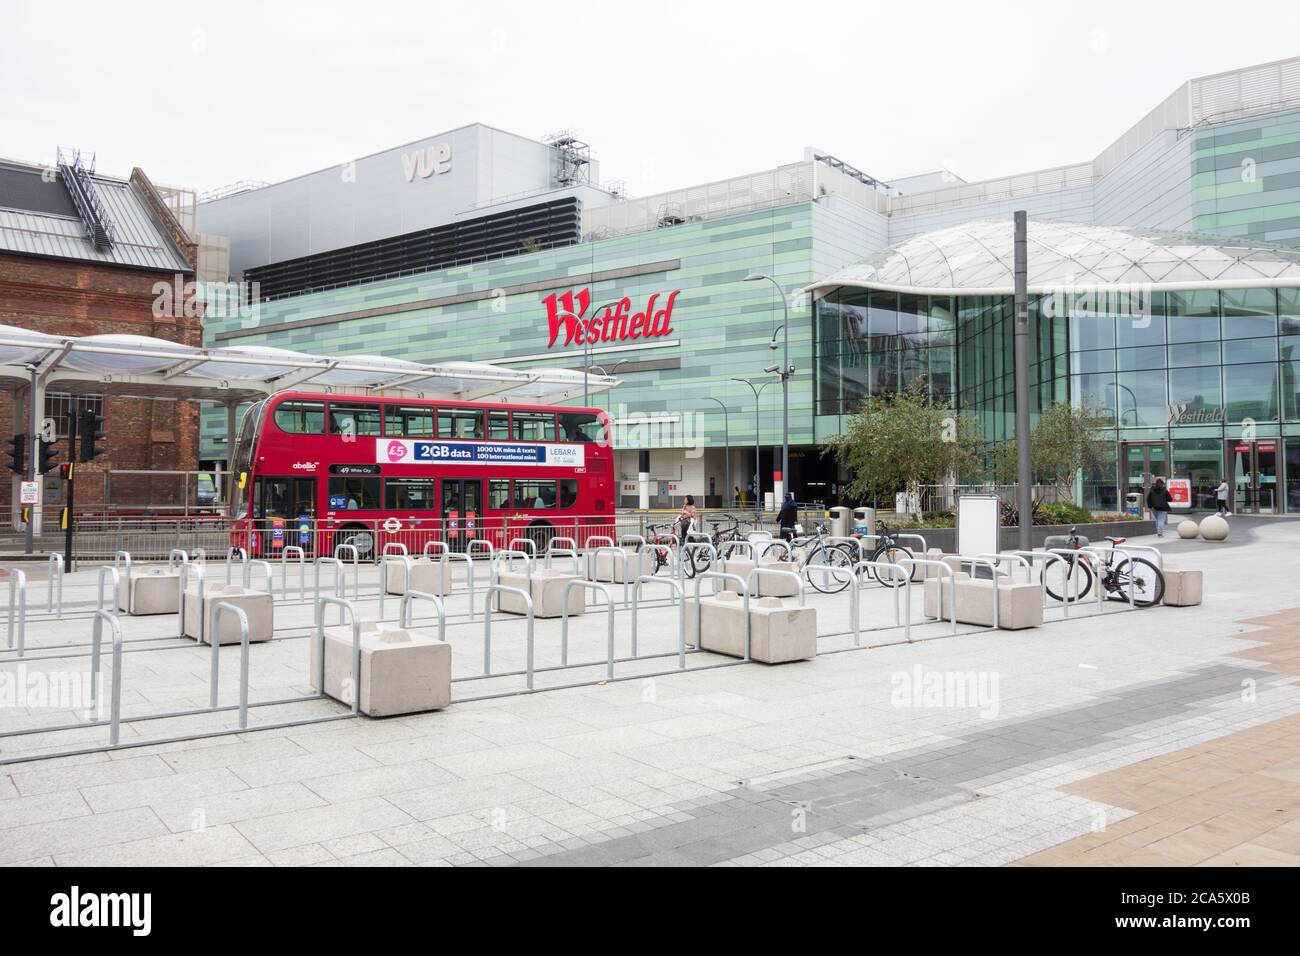 A deserted Westfield shopping centre in White City in the London Borough of Hammersmith and Fulham, London, UK Stock Photo